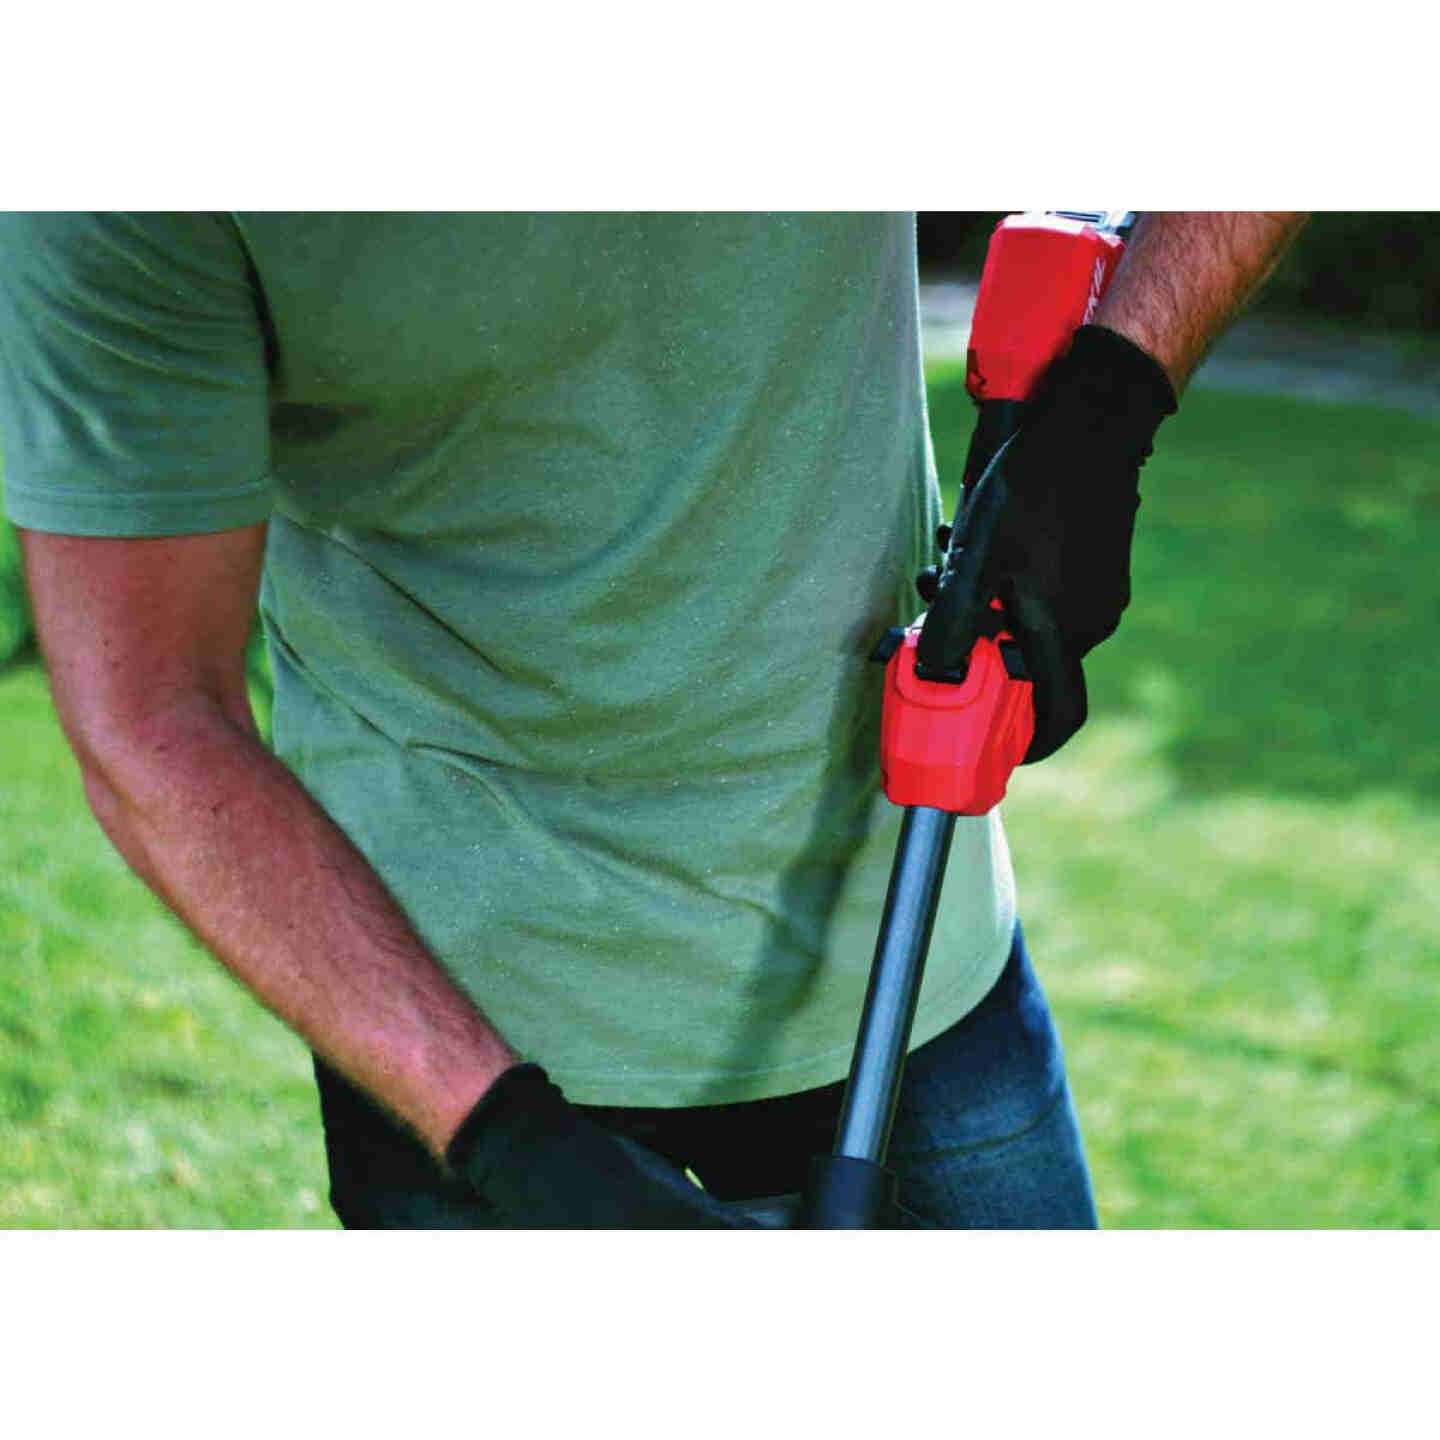 SKIL PWRCore 20V Brushless 13 In. Cordless String Trimmer Image 5